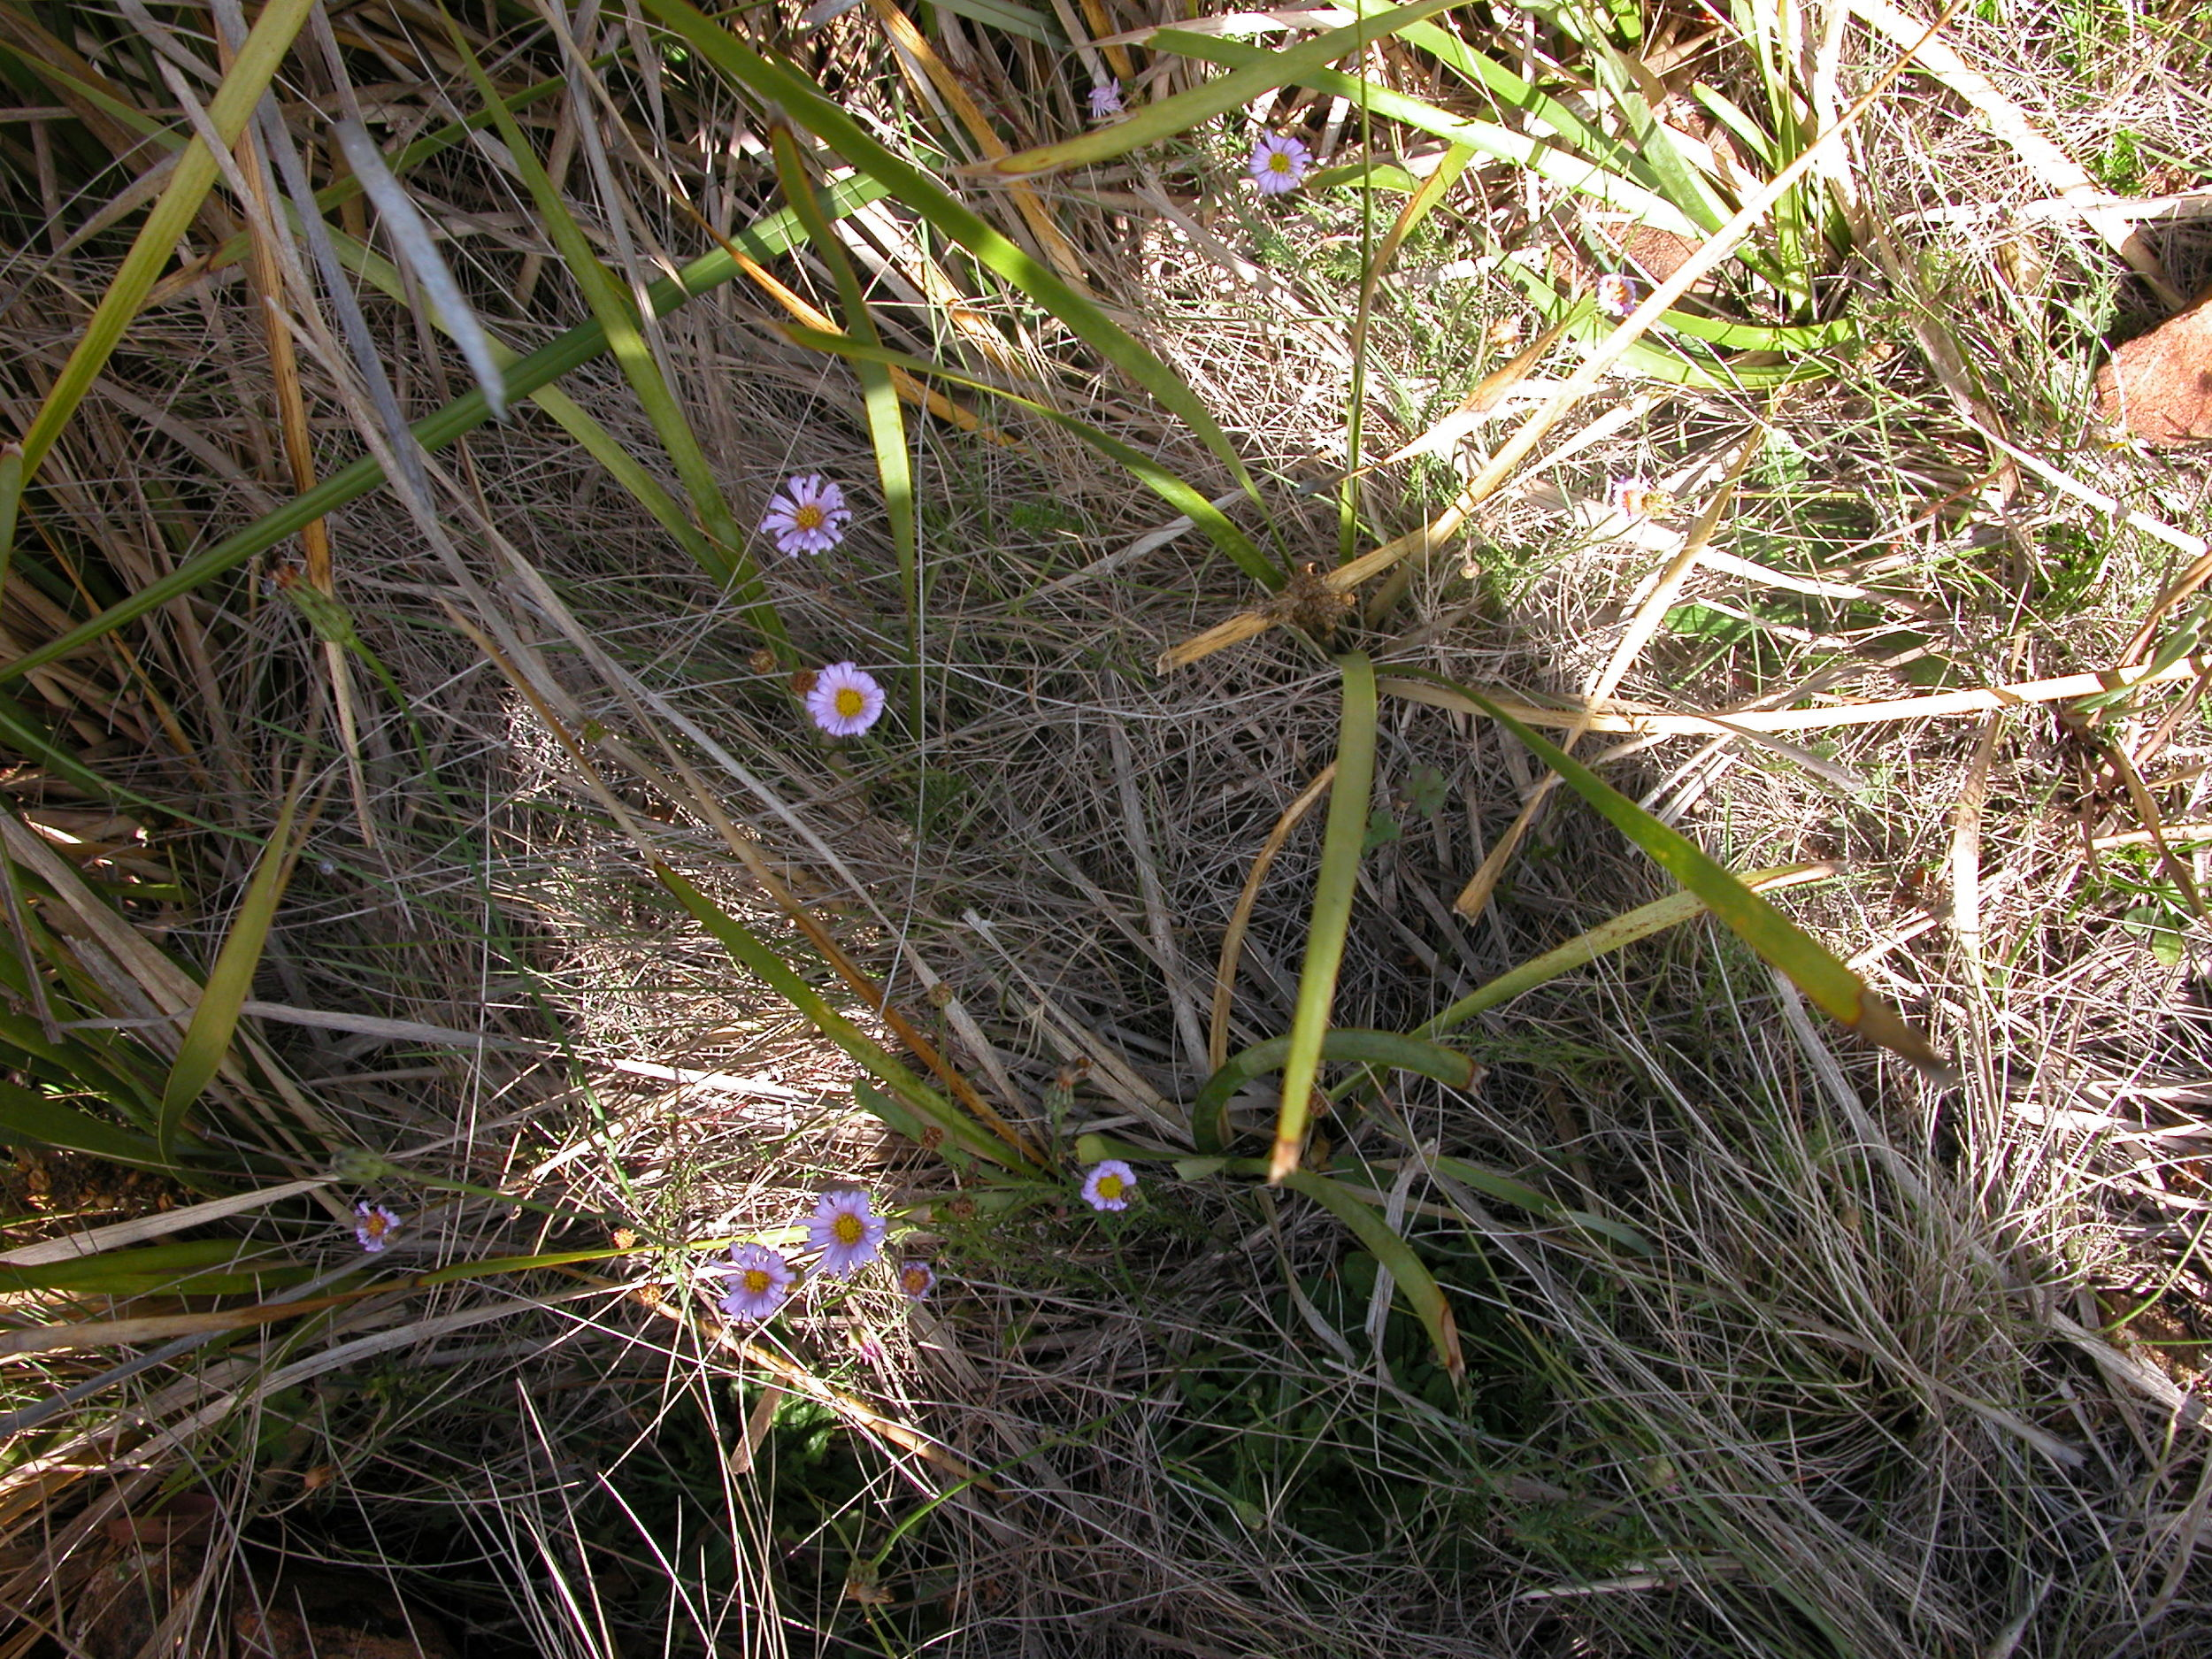 pring wildflowers–endangered cut-leaf daisies–finally appearing after the autumn rains. A lovely example of ecosystem resilience. These plants have adapted to Australia's wildly variable seasonal weather patterns, and take advantage of any set of conditions that will let them reproduce.